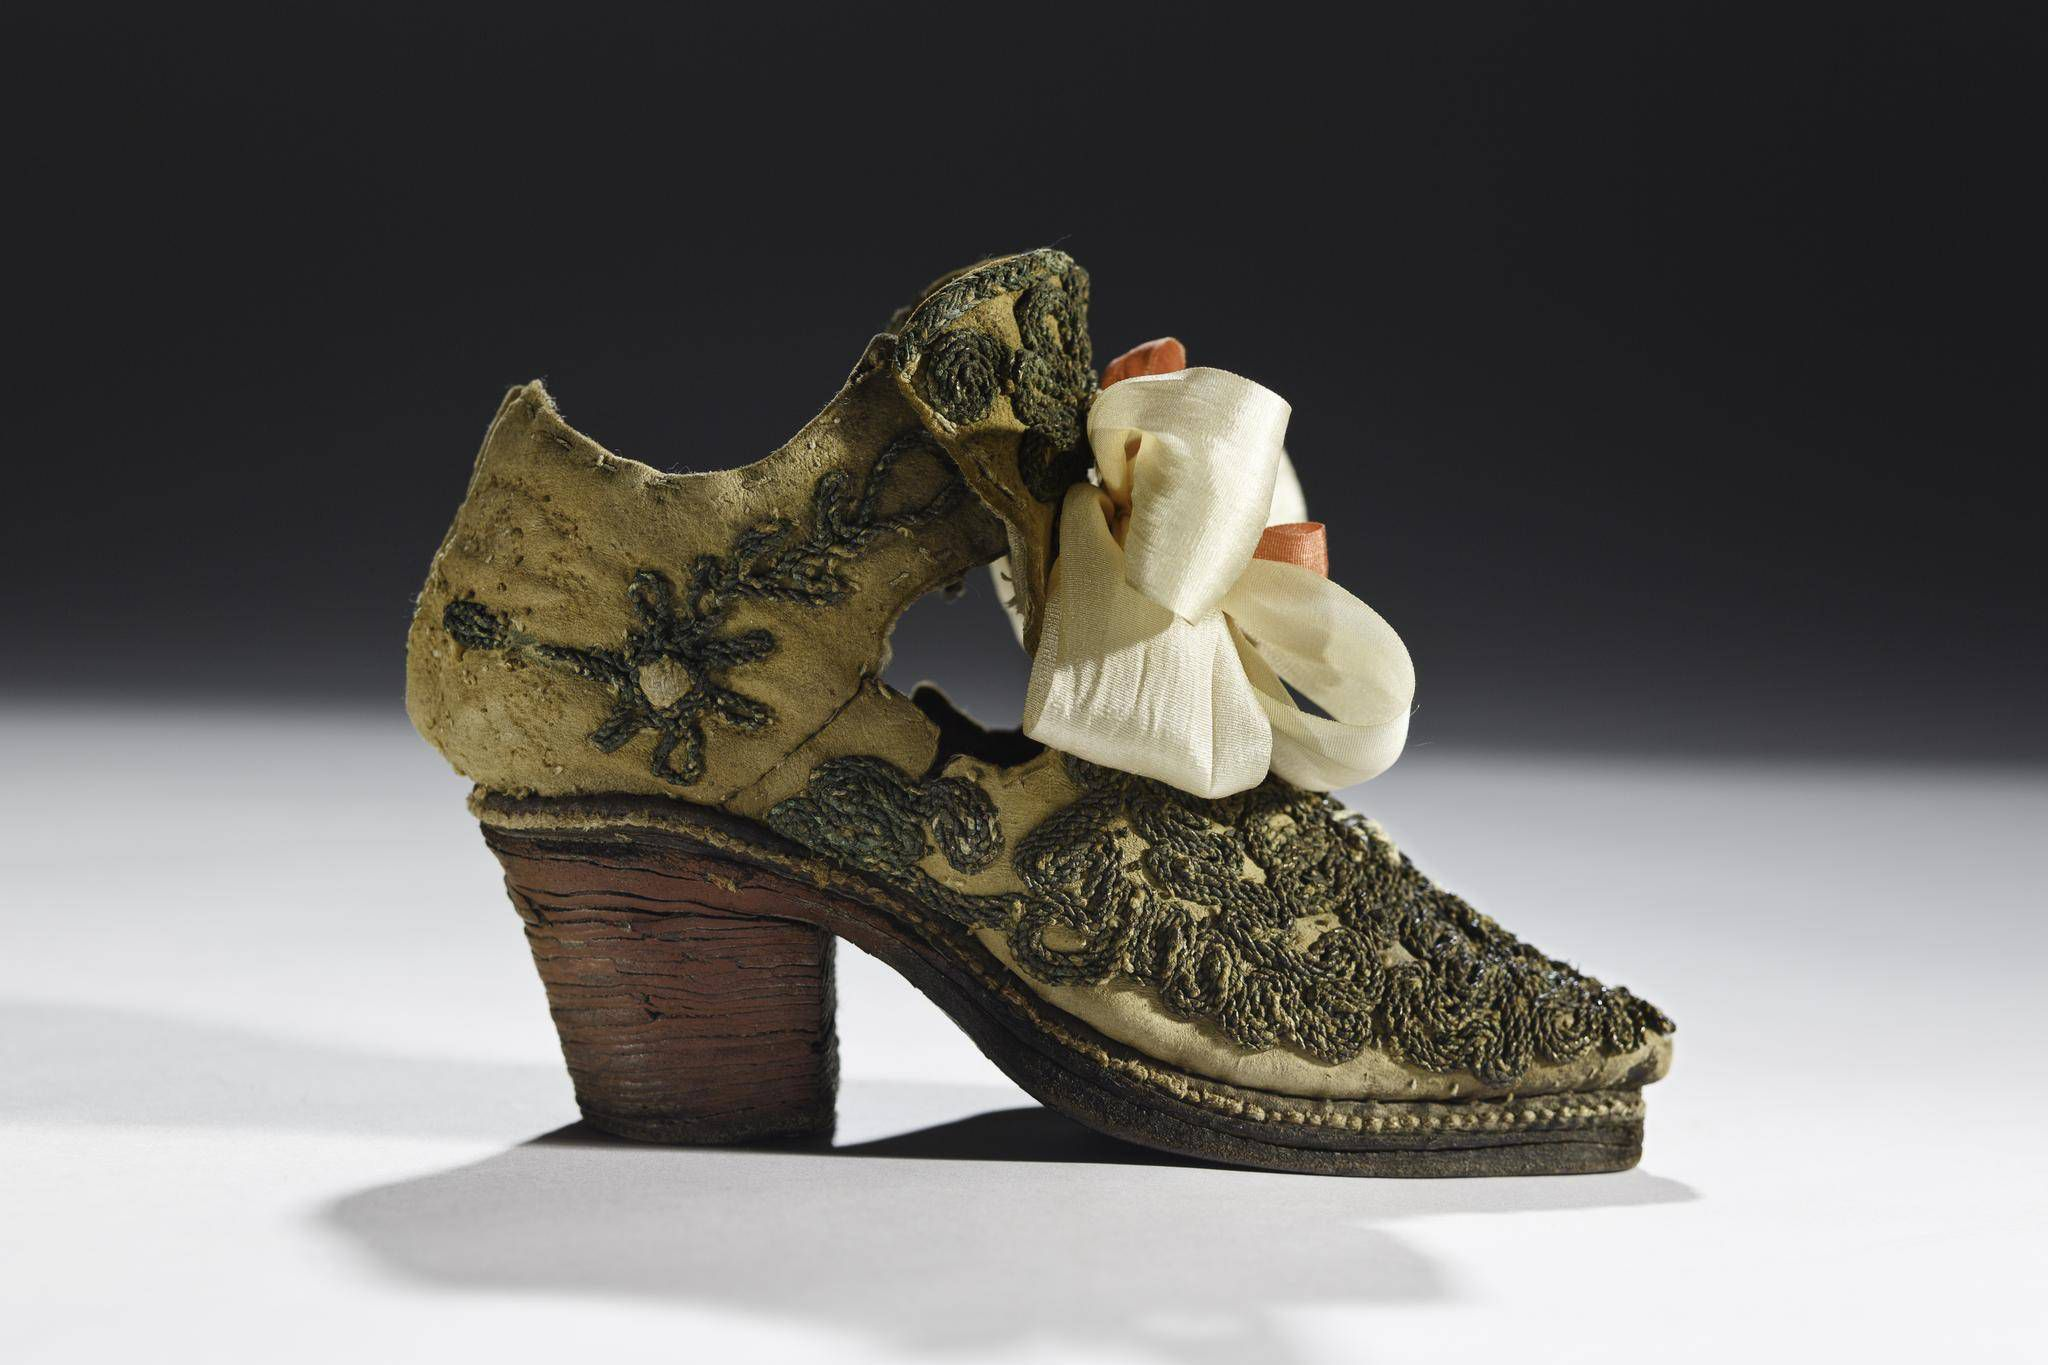 39c93e7a4fae New exhibit recalls a time when heels were a symbol of strapping  masculinity - The Globe and Mail